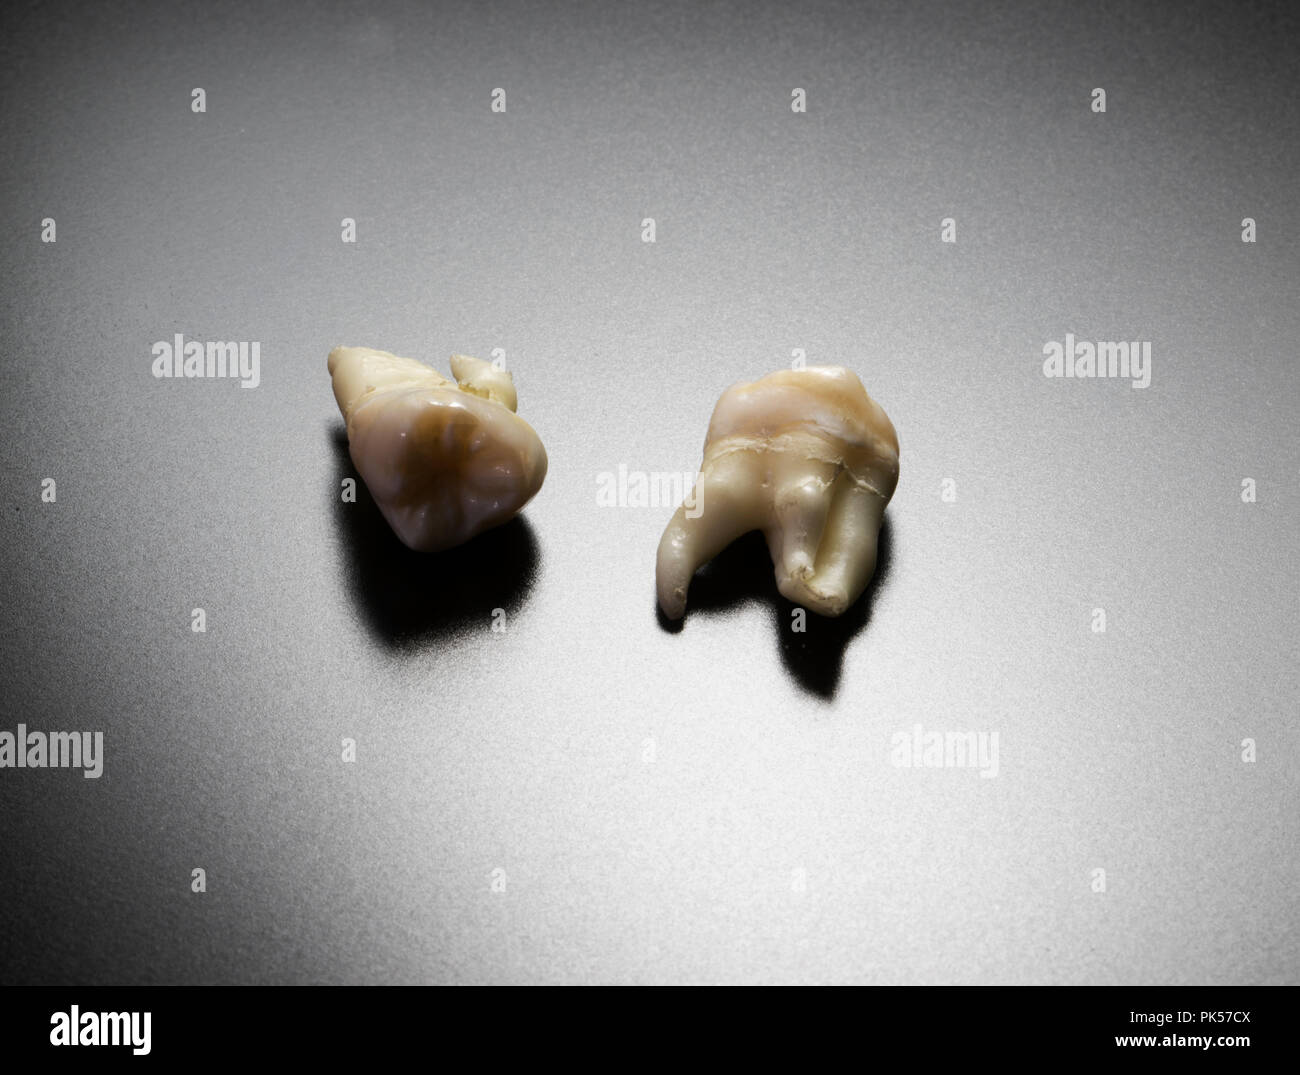 Human teeth. Removing wisdom teeth. Dental extraction of adult molars. Isolated teeth. - Stock Image